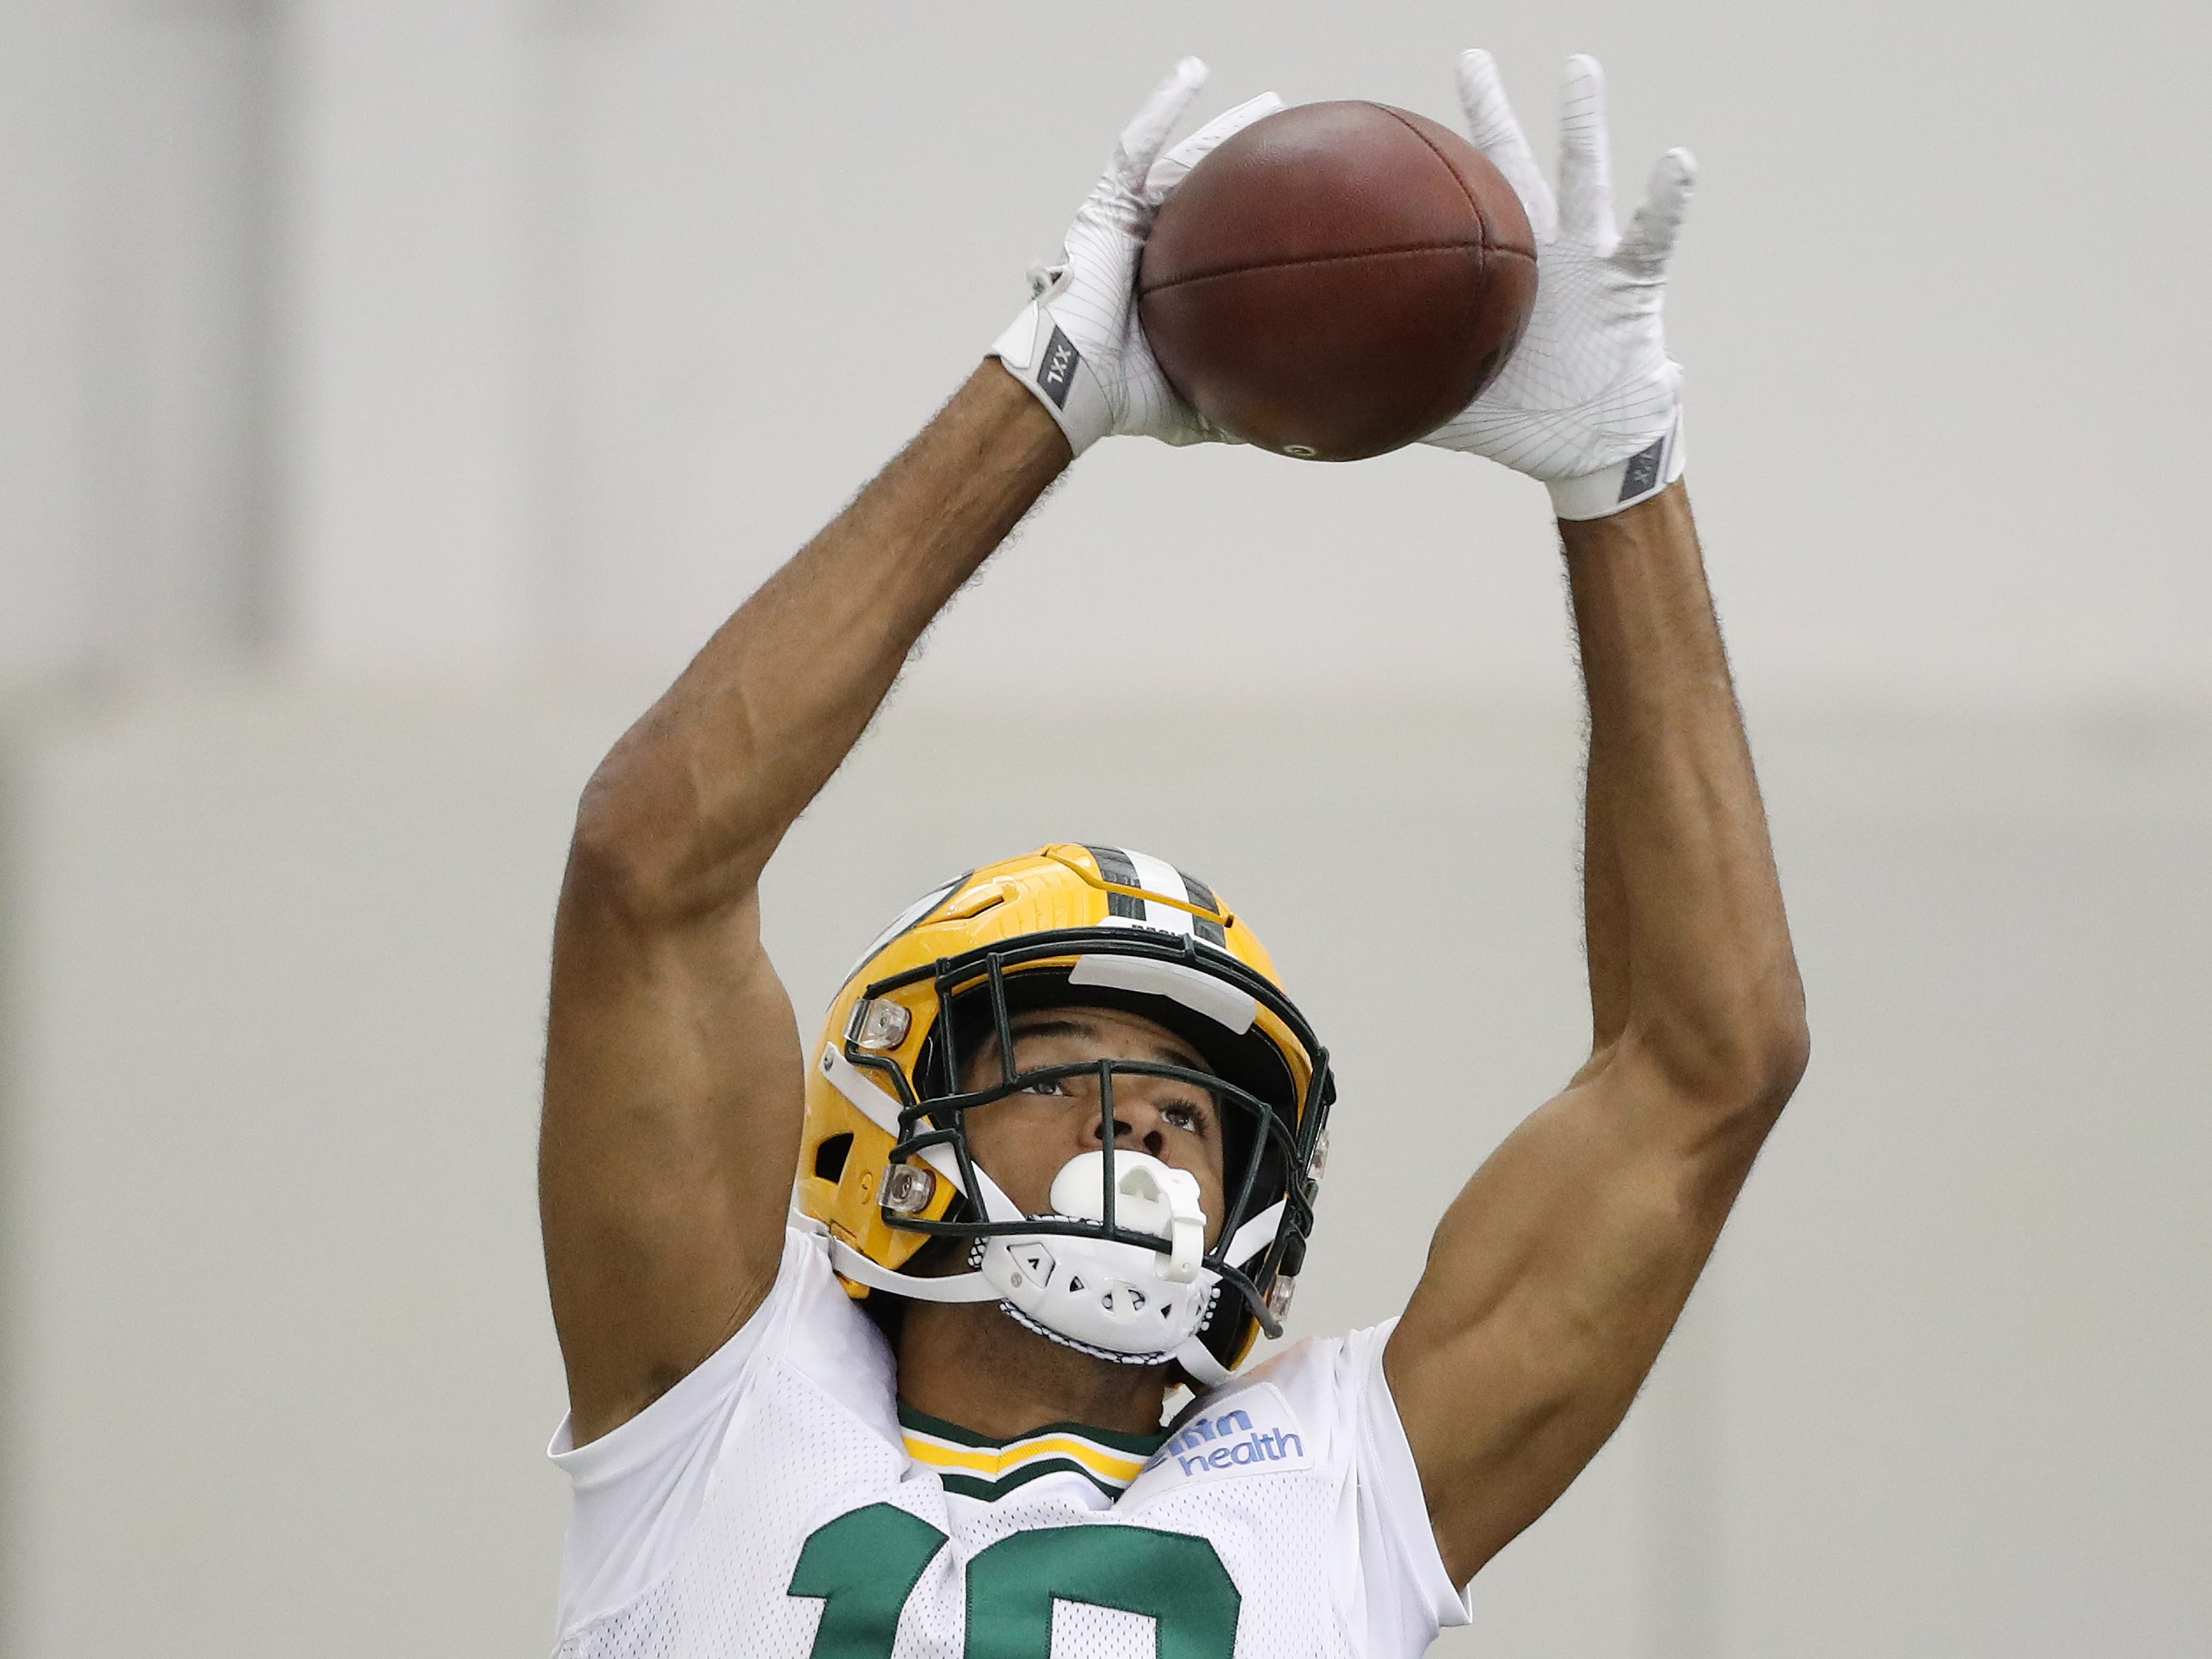 Green Bay Packers wide receiver Equanimeous St. Brown (19) during practice inside the Hutson Center Thursday, October 11, 2018 in Ashwaubenon, Wis.